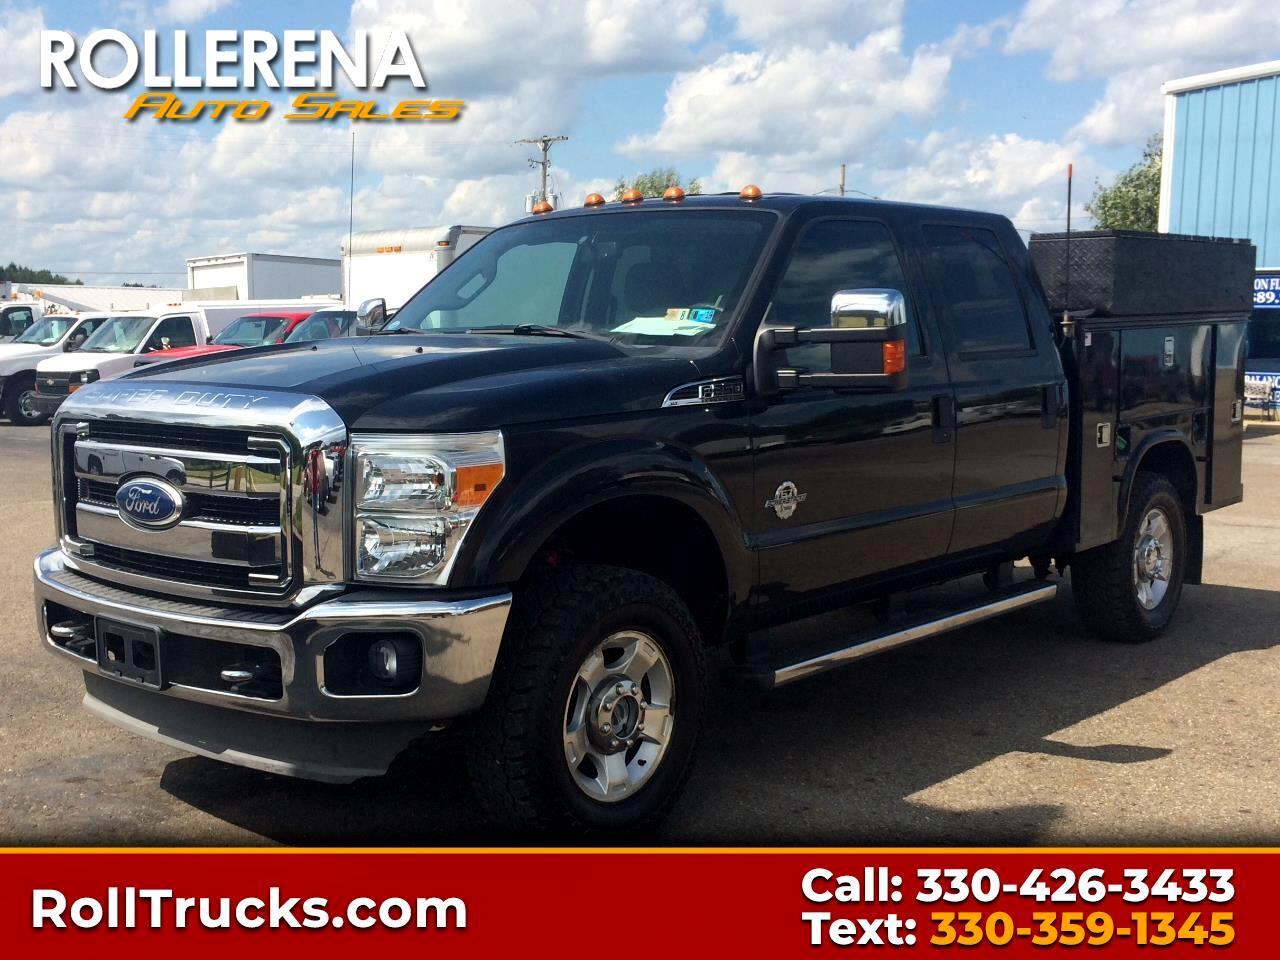 2011 Ford F-250 Crew Cab 4WD